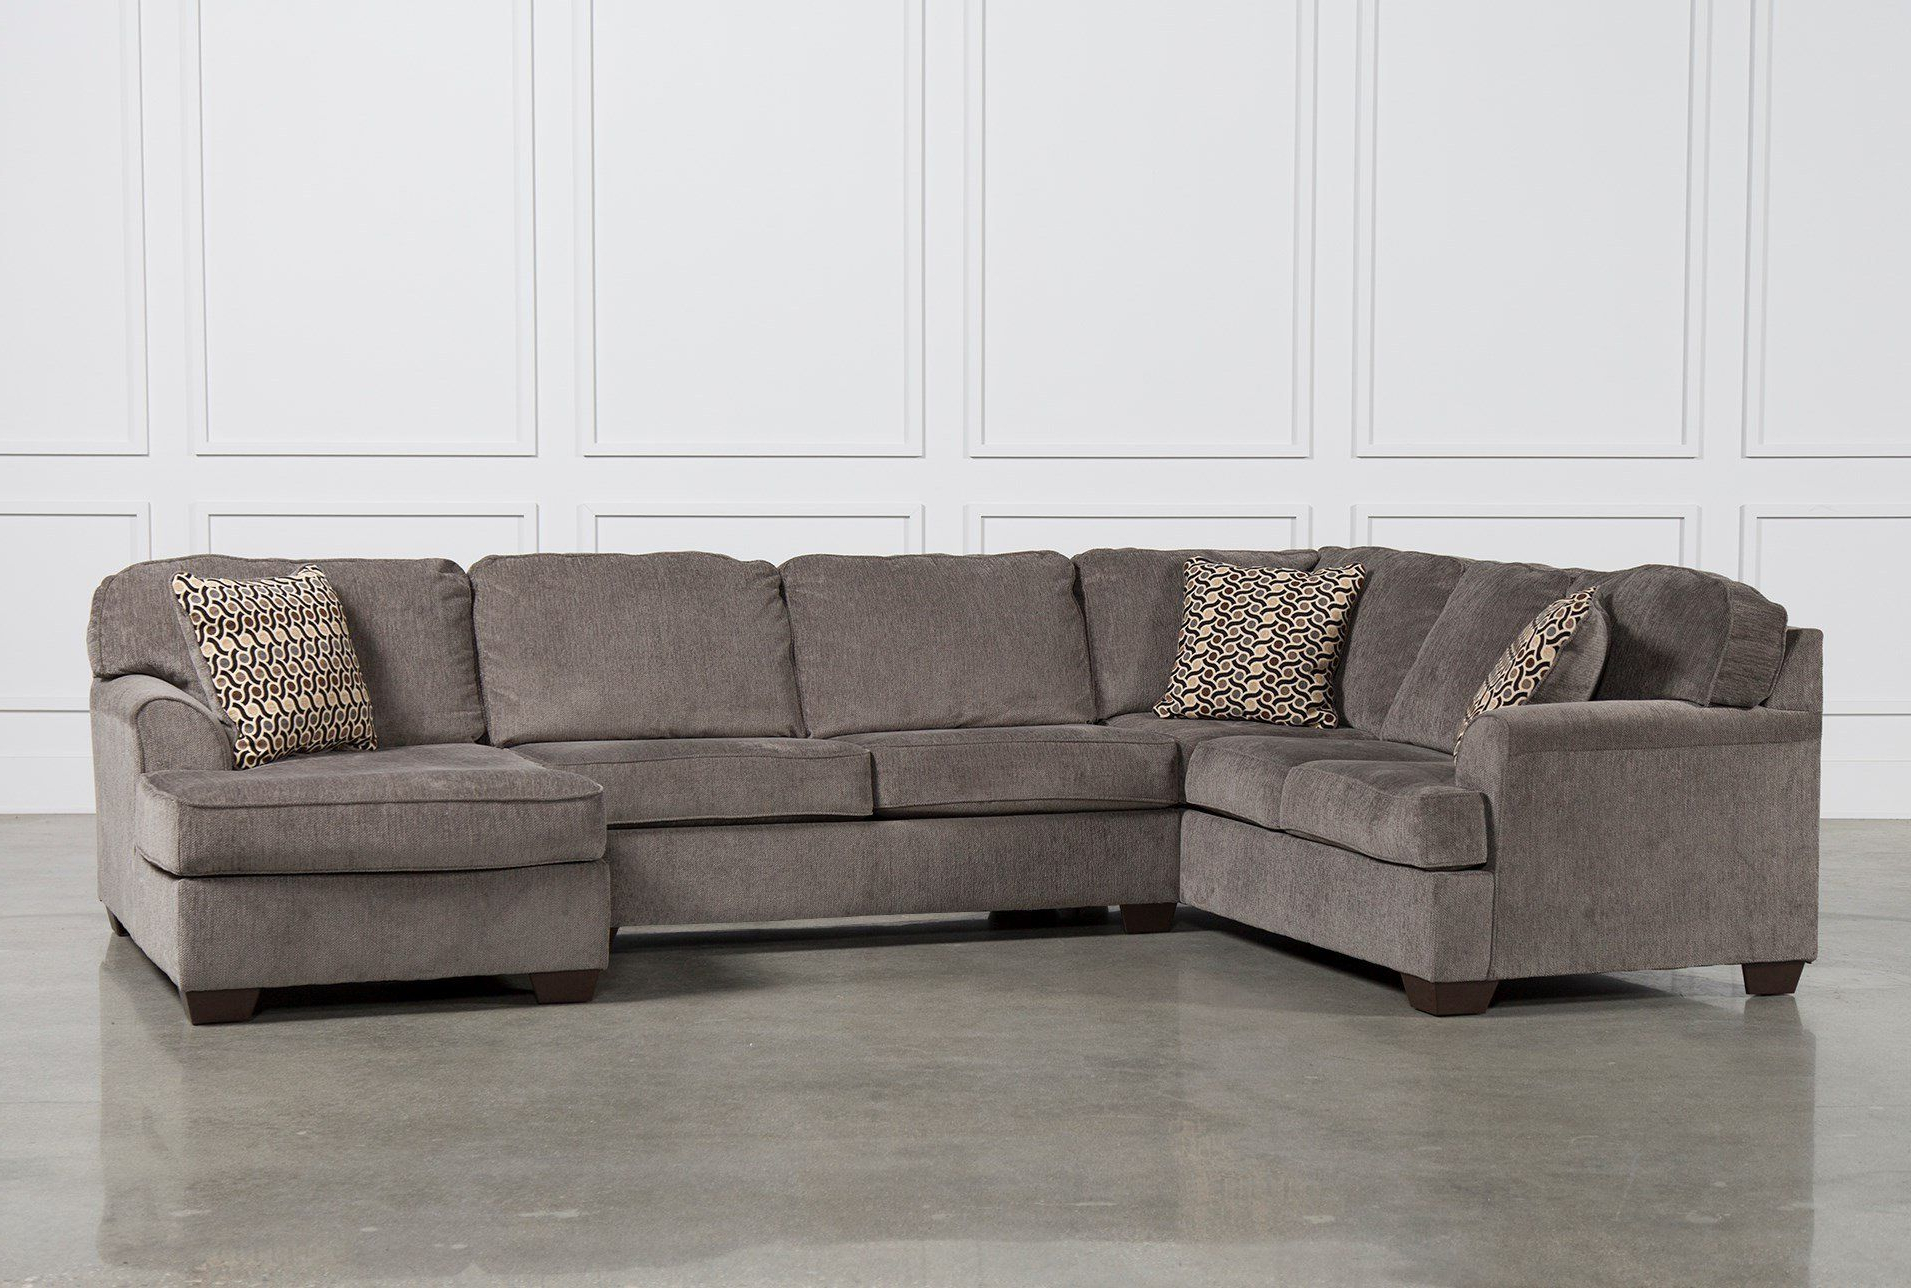 Shop For Loric Smoke 3 Piece Sectional W/raf Chaise At Livingspaces Intended For Trendy Meyer 3 Piece Sectionals With Laf Chaise (View 9 of 20)